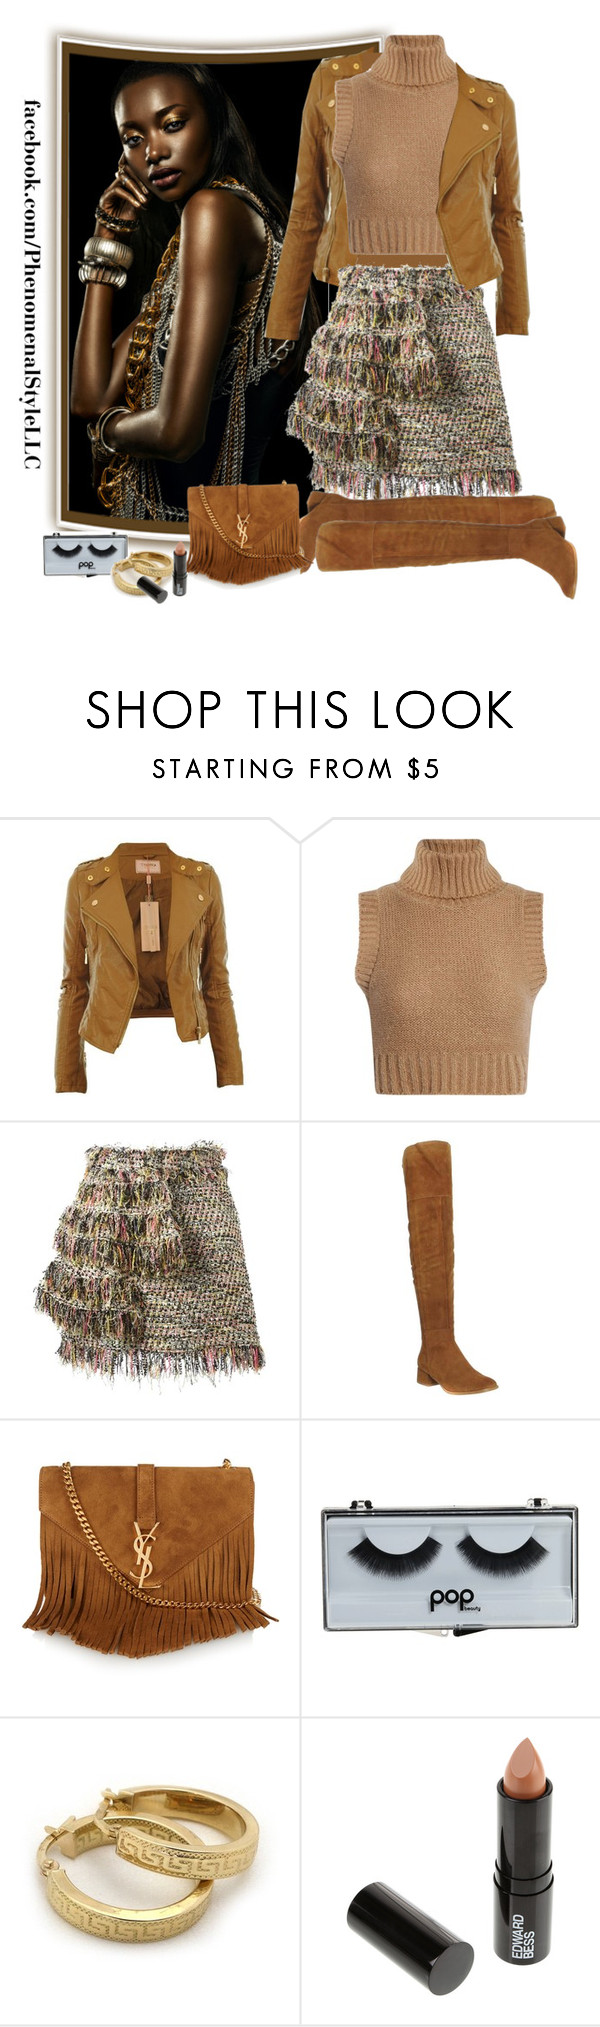 """""""Skins"""" by konata-phenomenalstyle ❤ liked on Polyvore featuring CO, Boohoo, MSGM, Office, Yves Saint Laurent, POPbeauty and Edward Bess"""